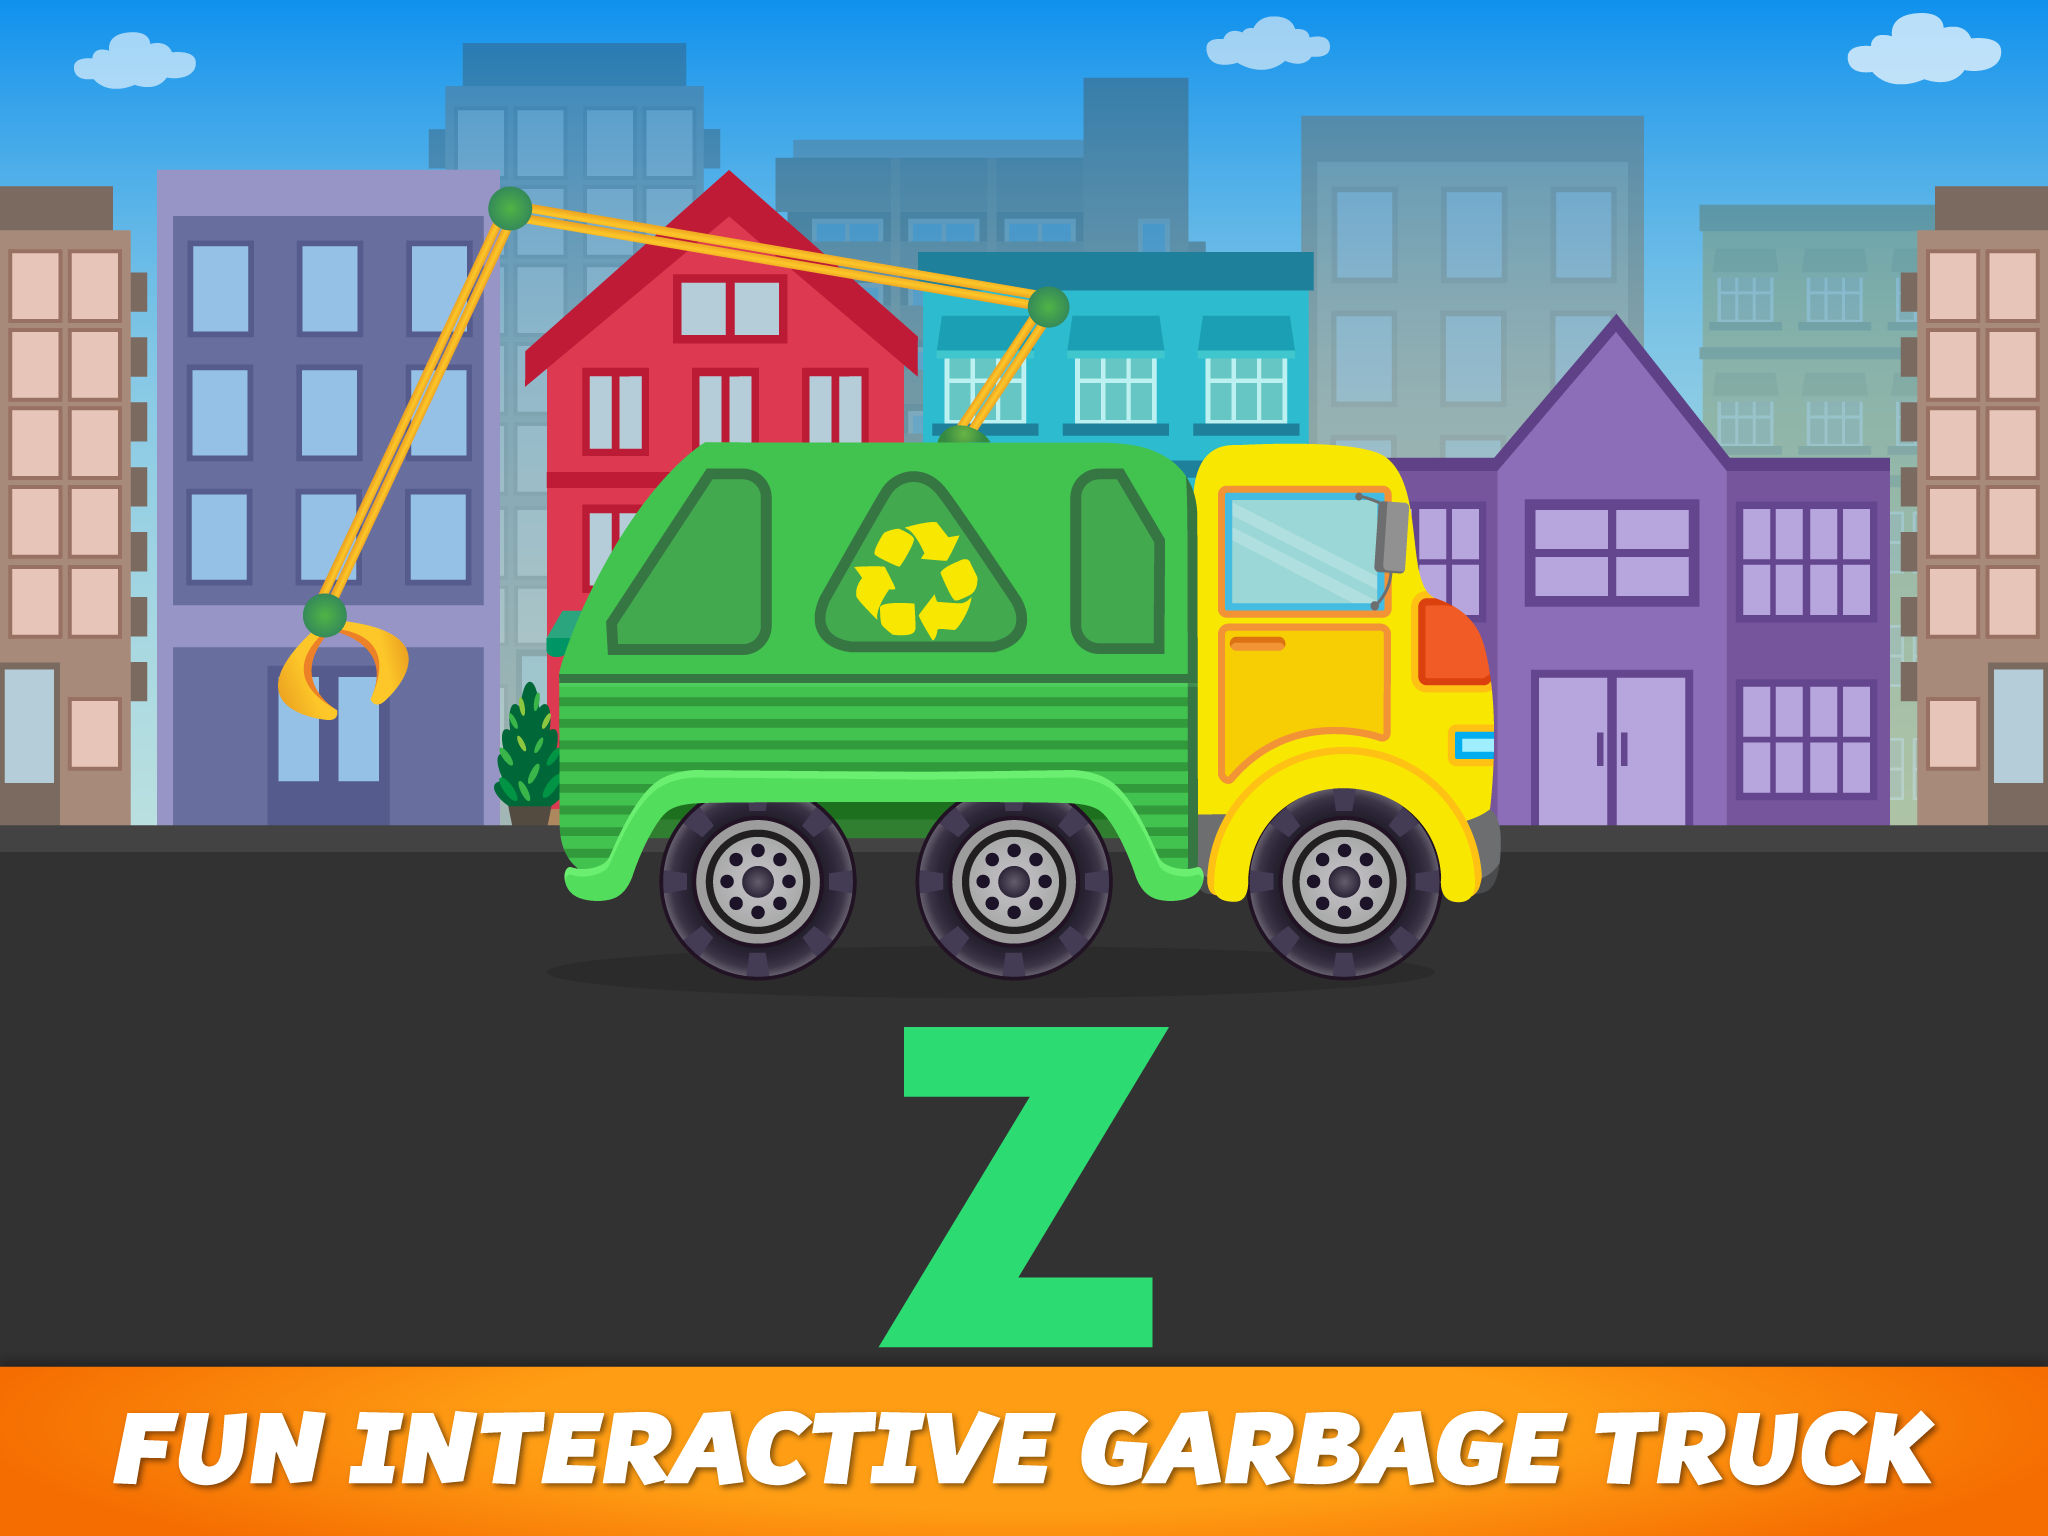 Get ready garbage truck coloring book - App Description